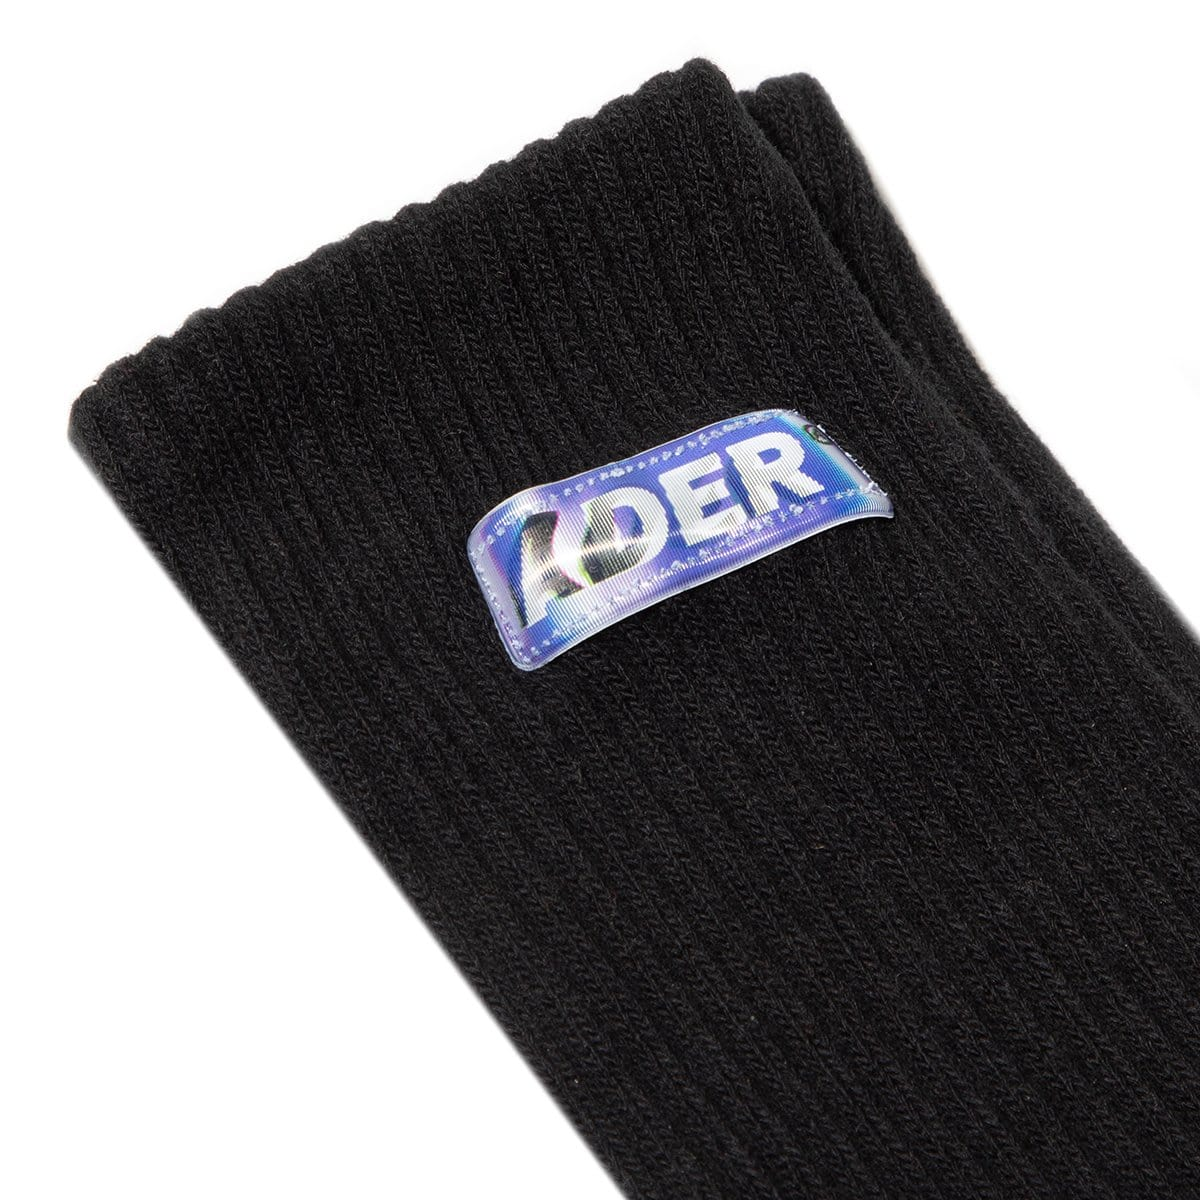 Ader Error Bags & Accessories BLACK / O/S / 20ASSSO12BK SMALL LENTICULAR LOGO SOCKS